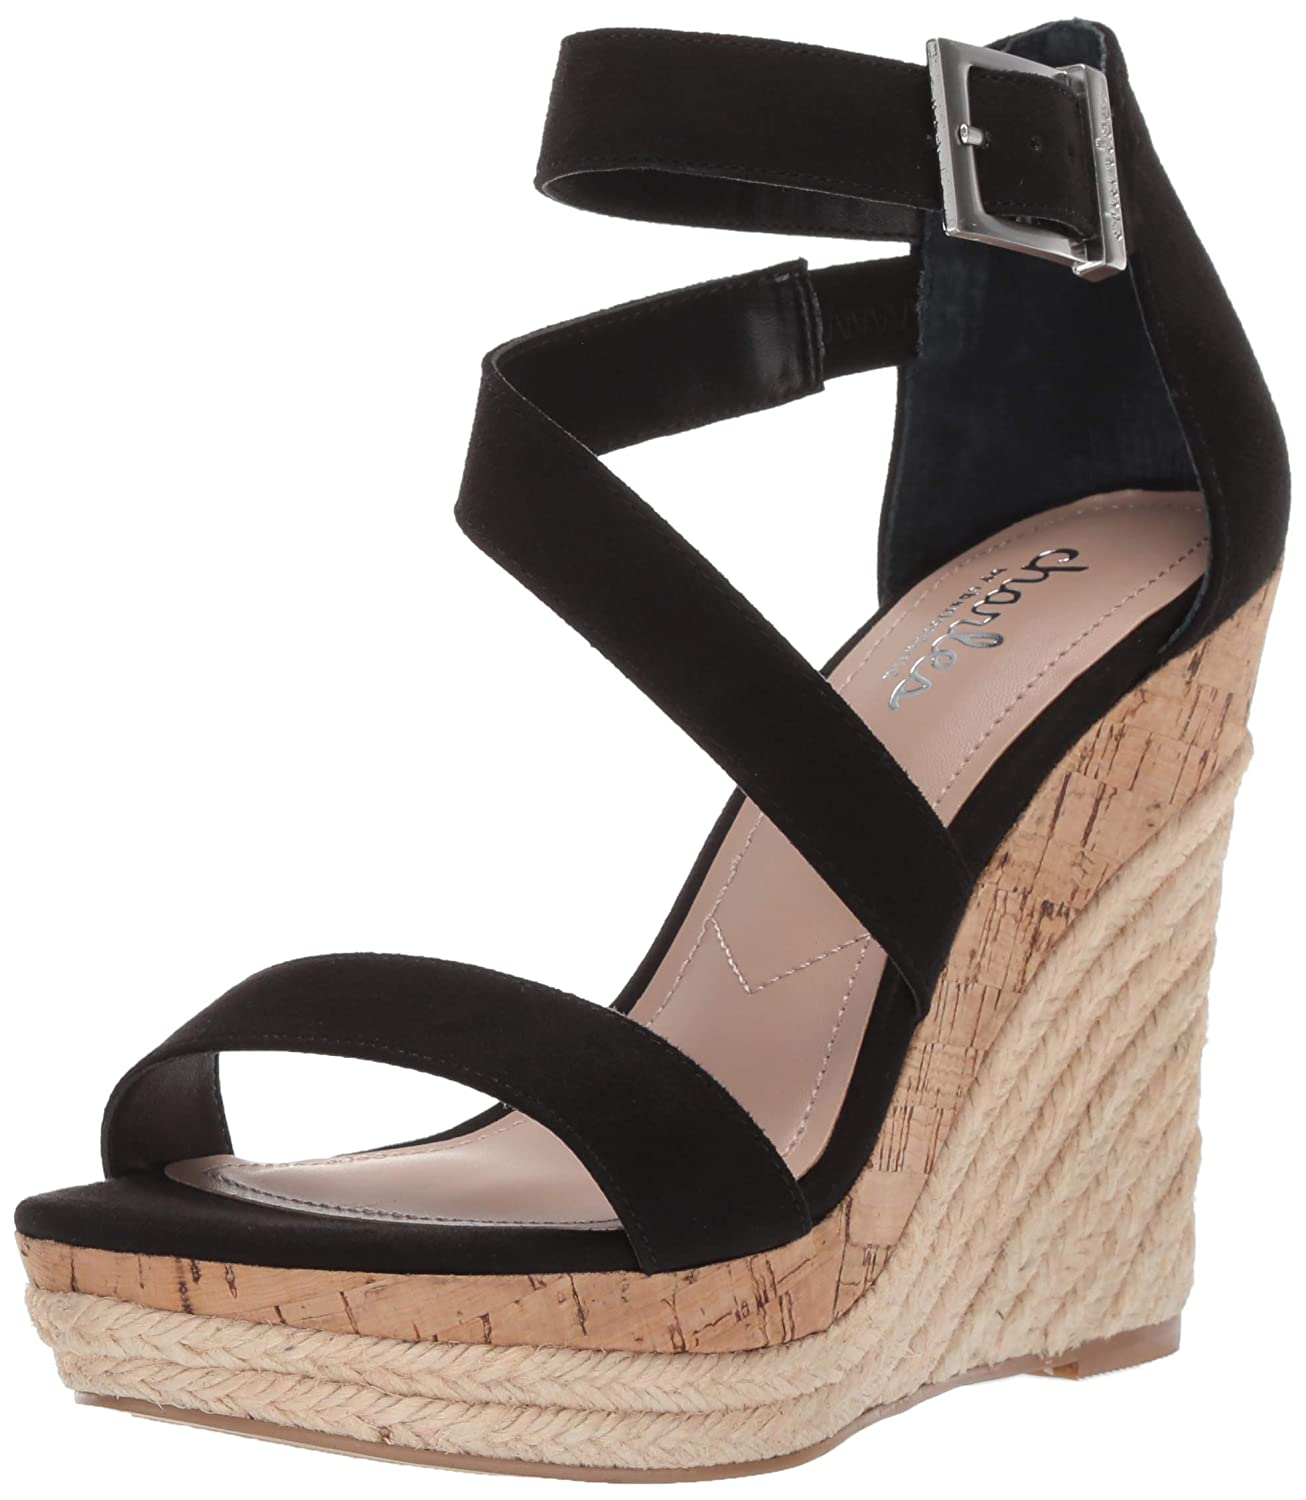 Black Charles by Charles David Womens Adrielle Wedge Sandal